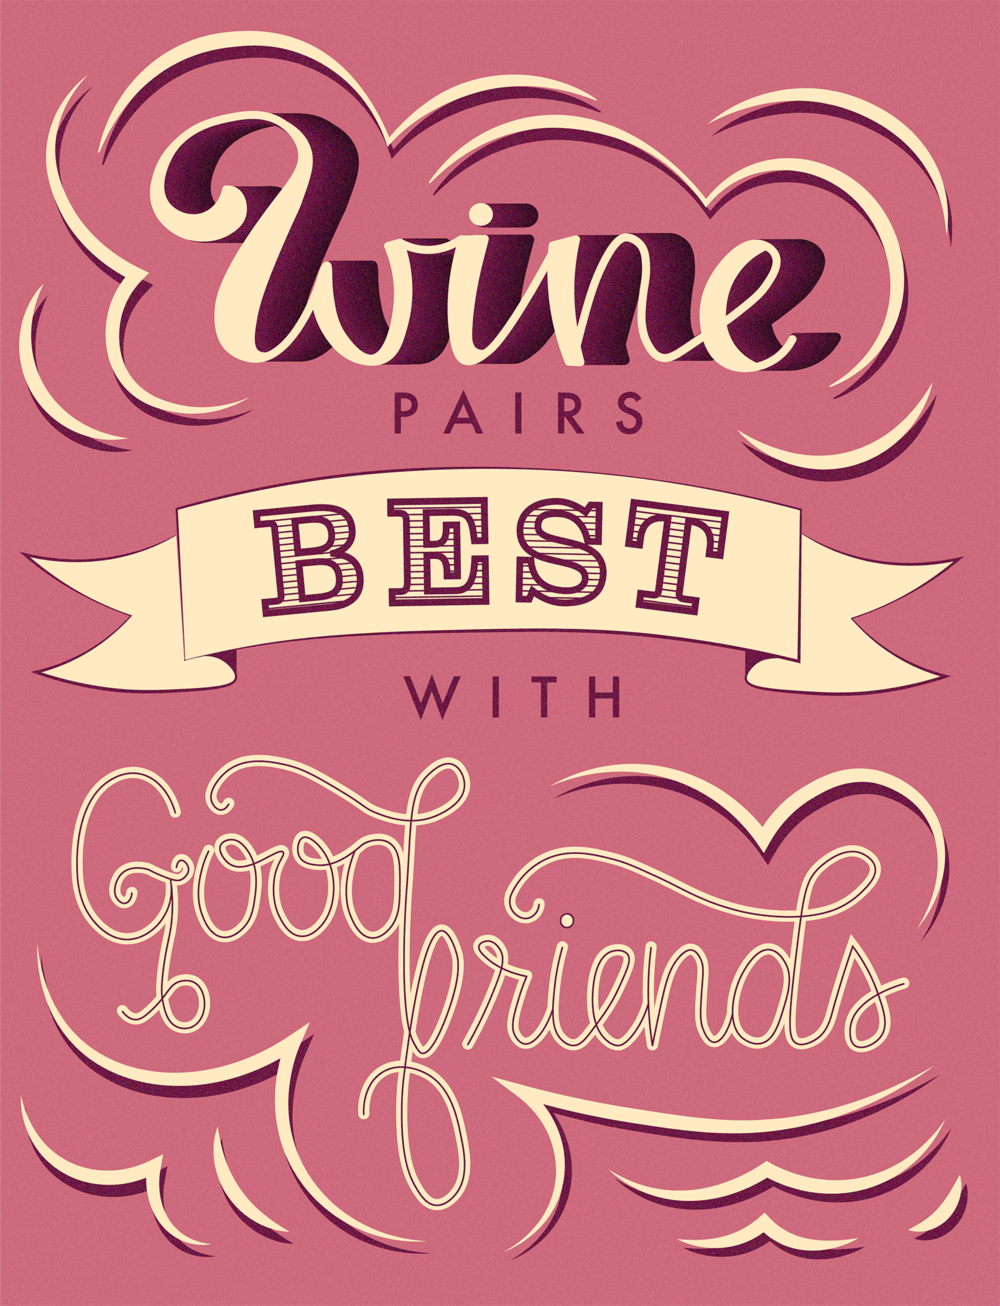 wine pairs best with good friends.png